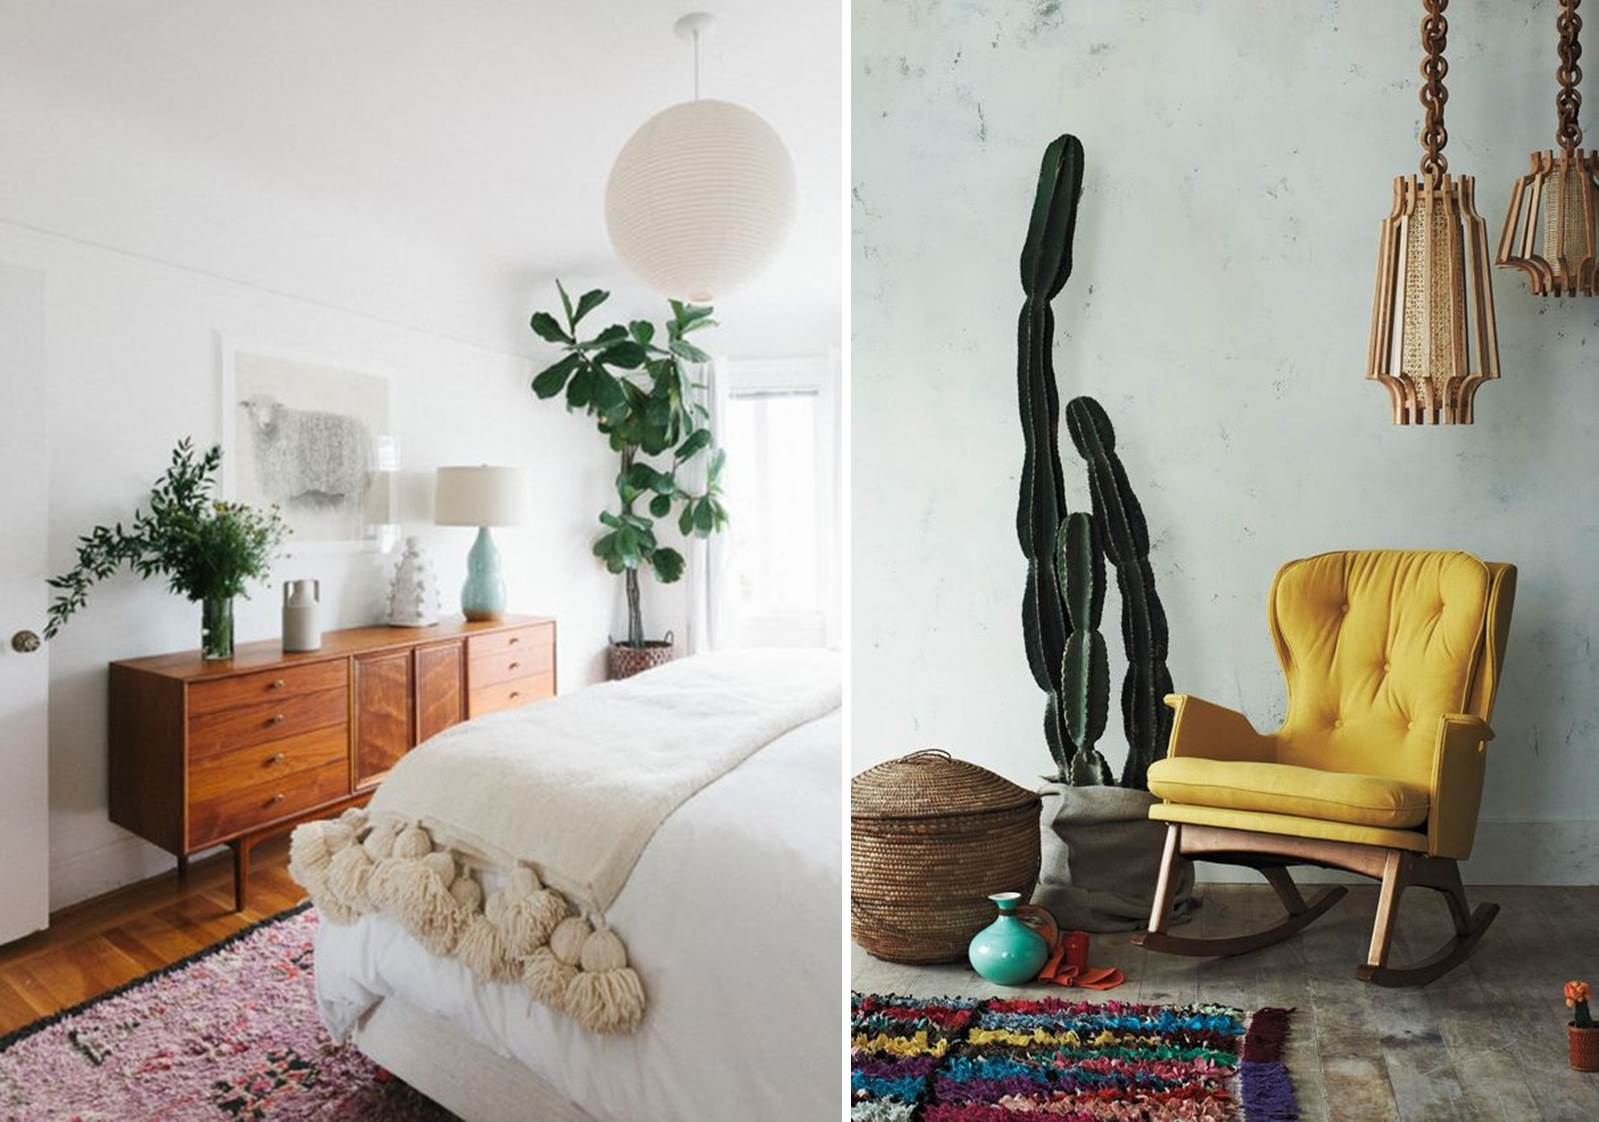 To See More Interior Decoration Images (among Other Things) Go To My  Pinterest. What Kind Of Interior Decoration Are You Guys Obsessed About?